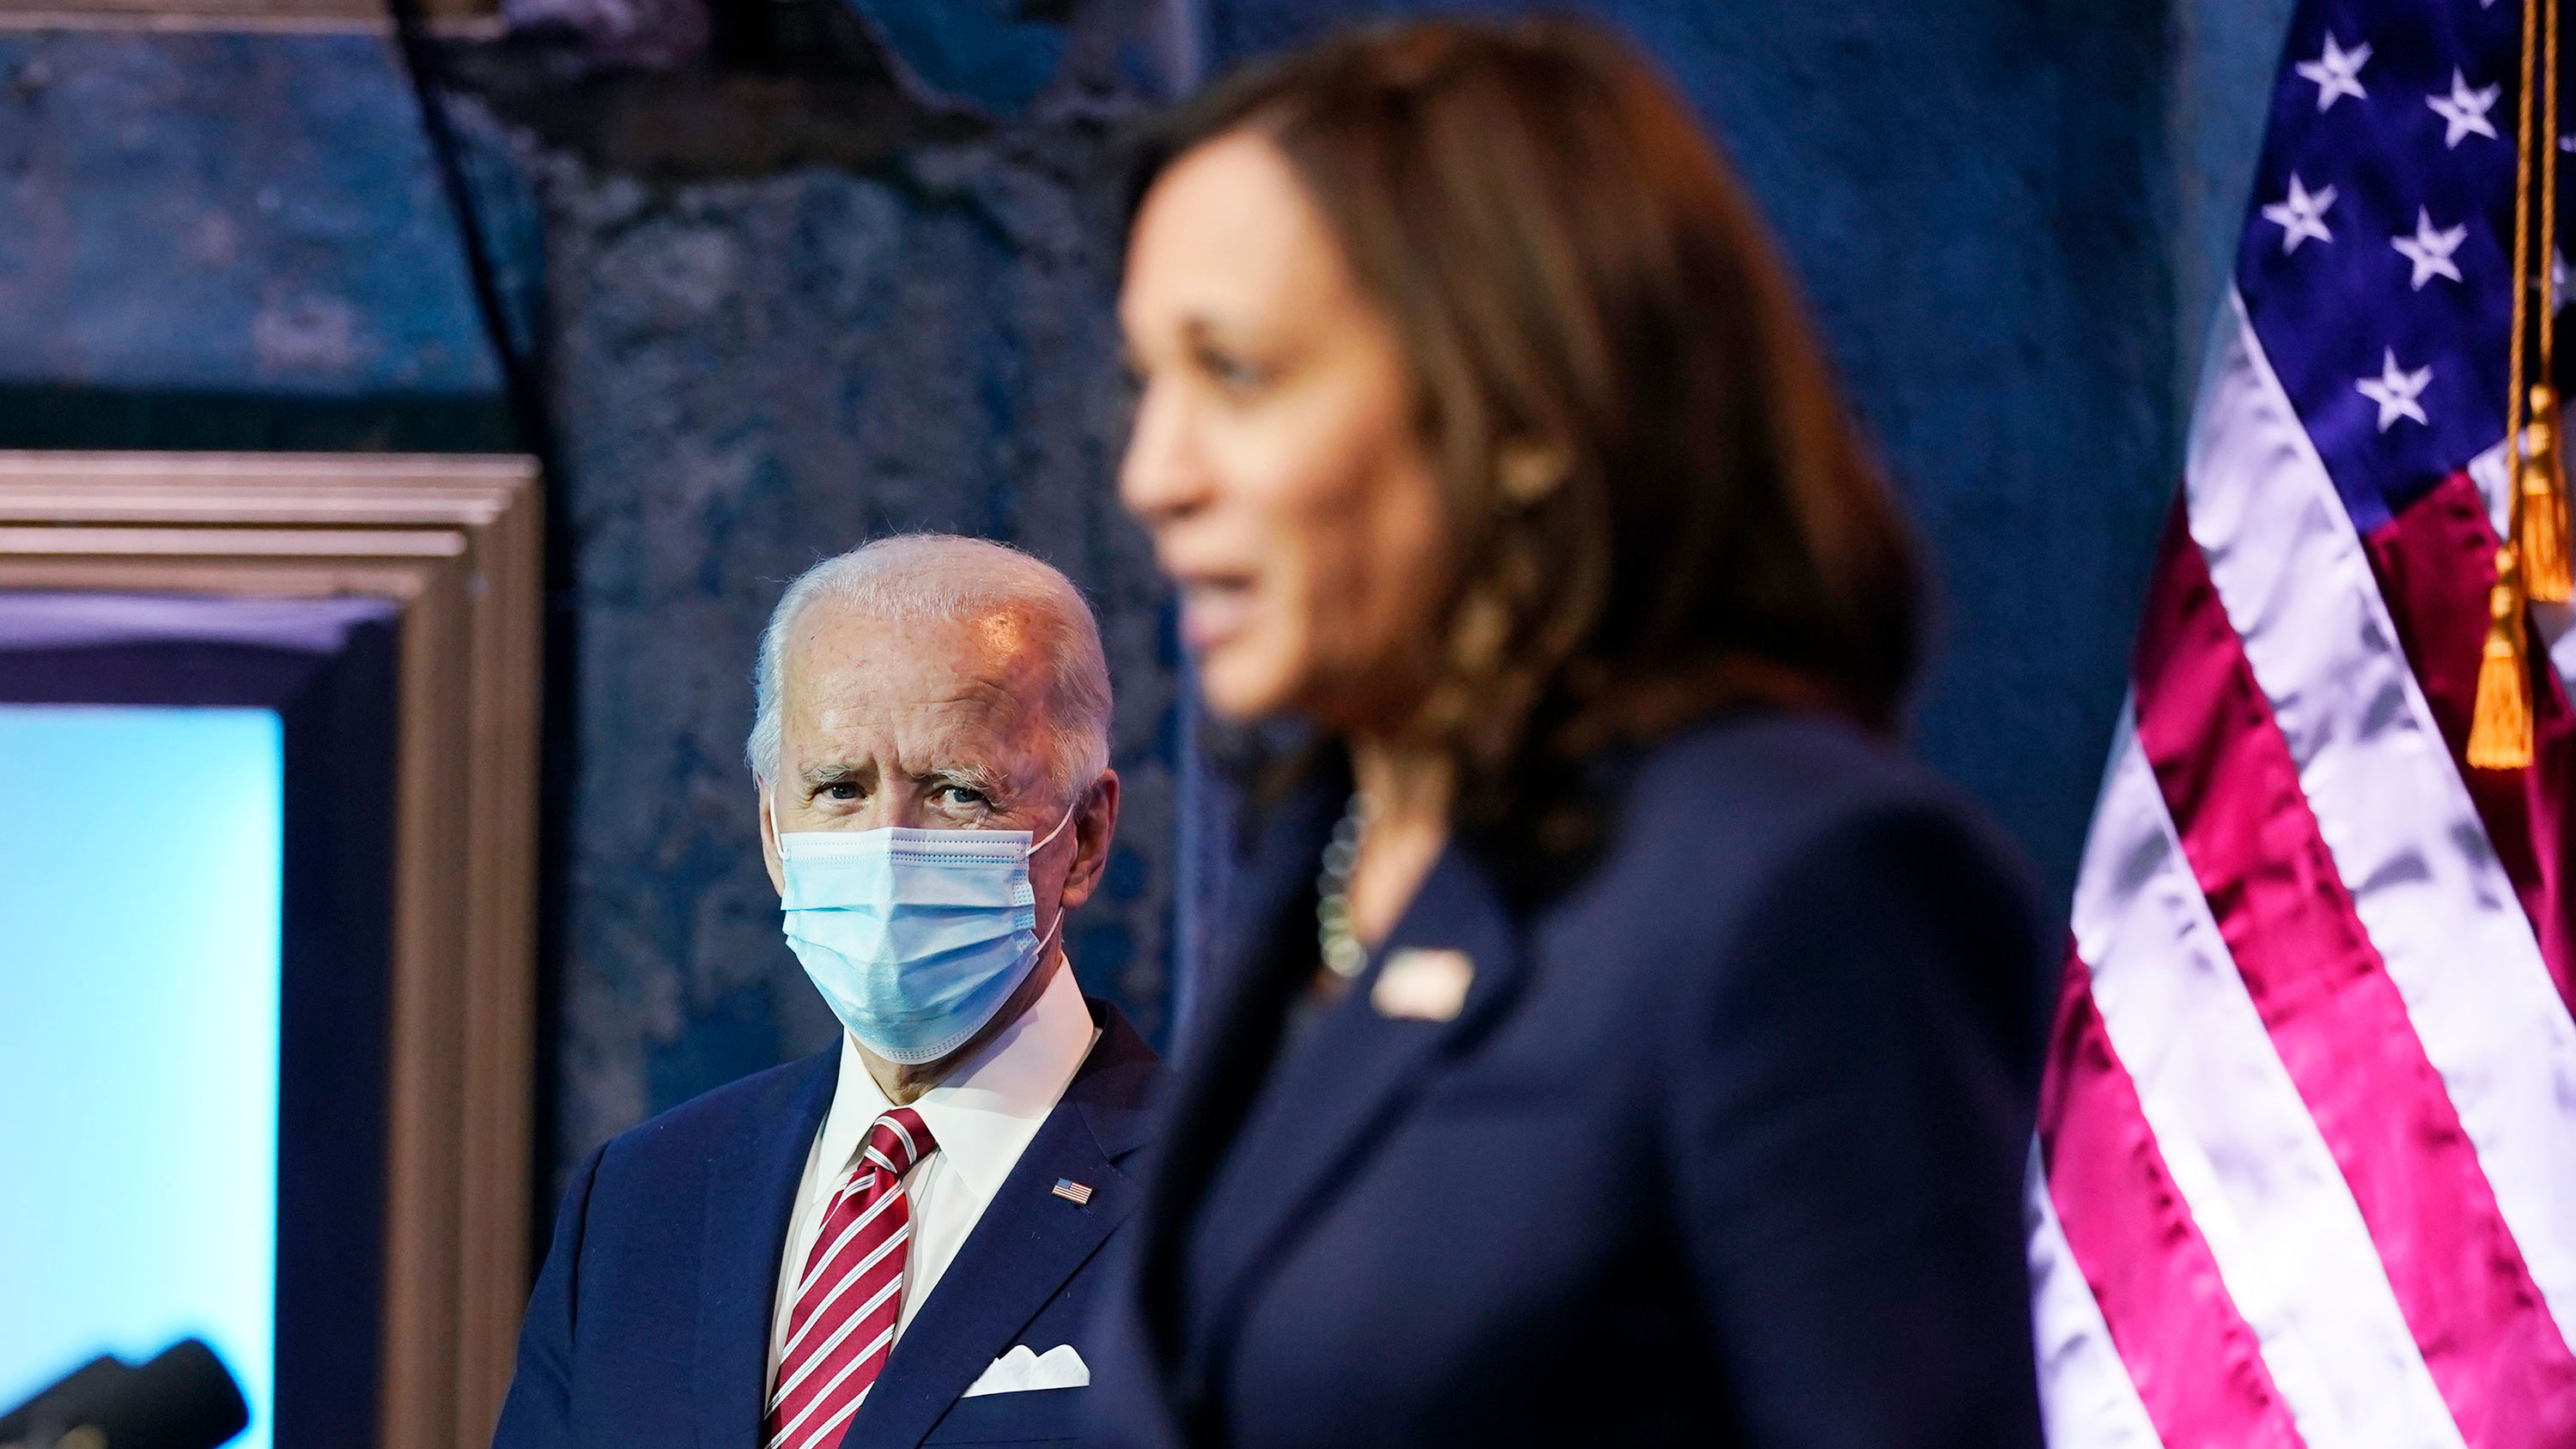 President-elect Joe Biden listens as Vice President-elect Kamala Harris speaks about economic recovery on Monday, November 16 in Wilmington, Delaware.